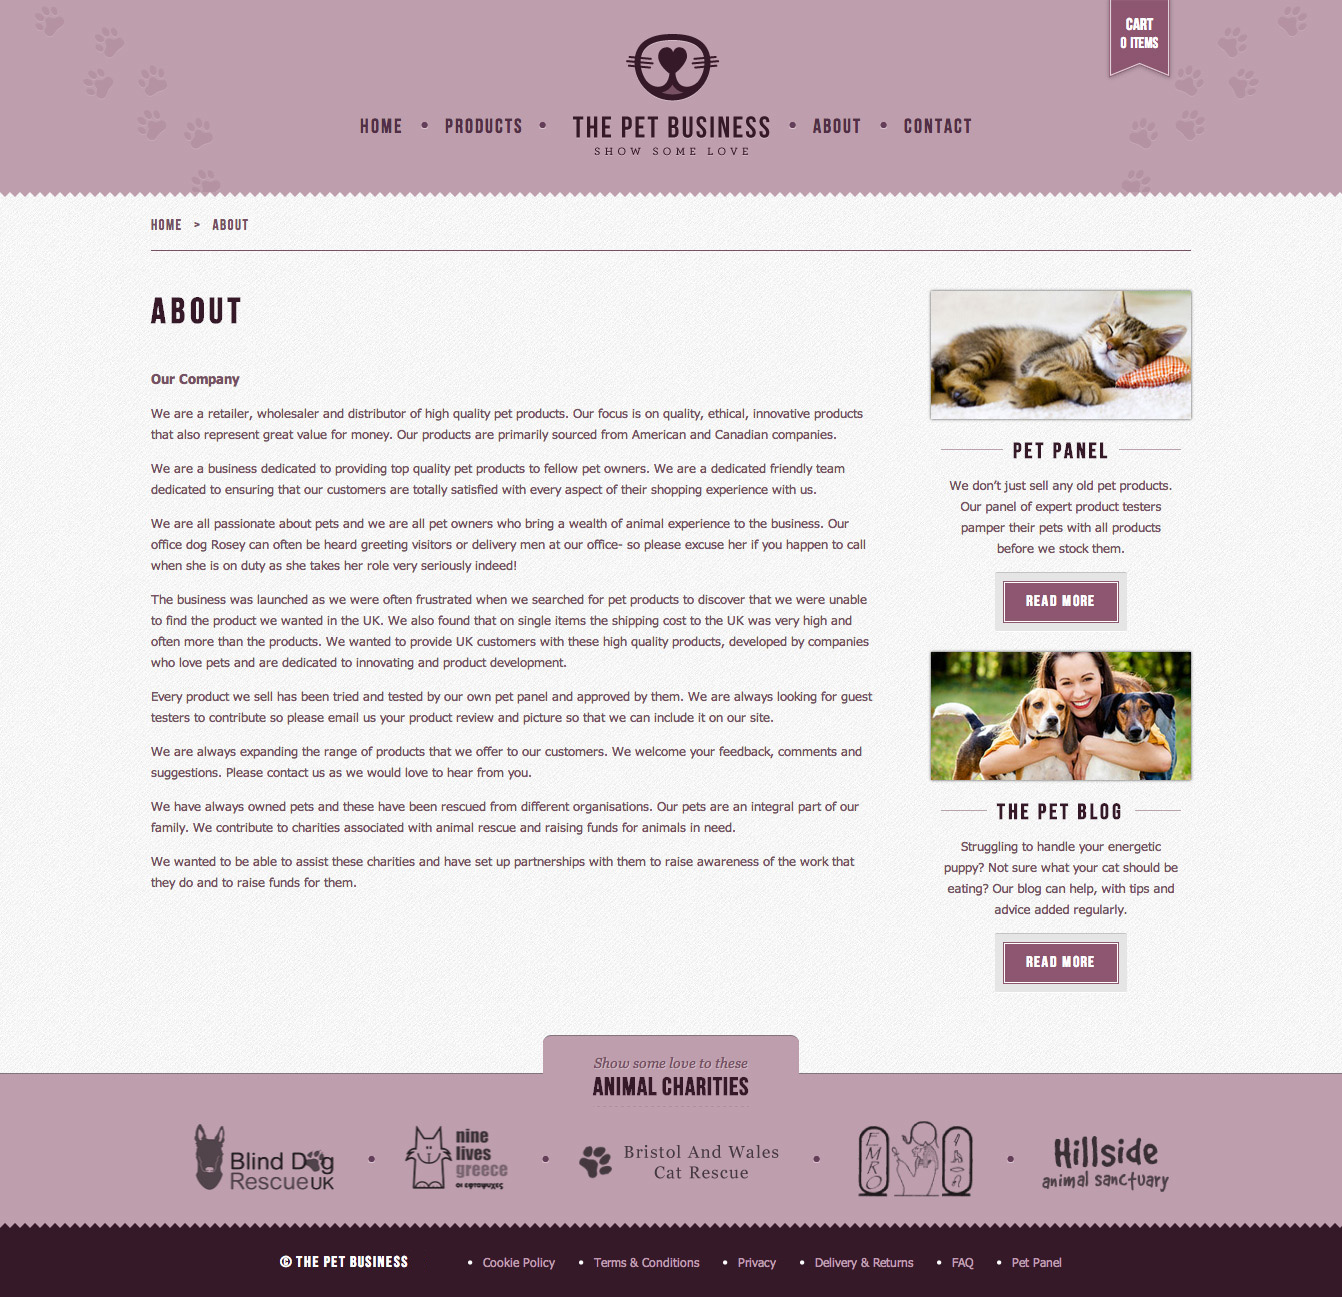 The Pet Business about page.